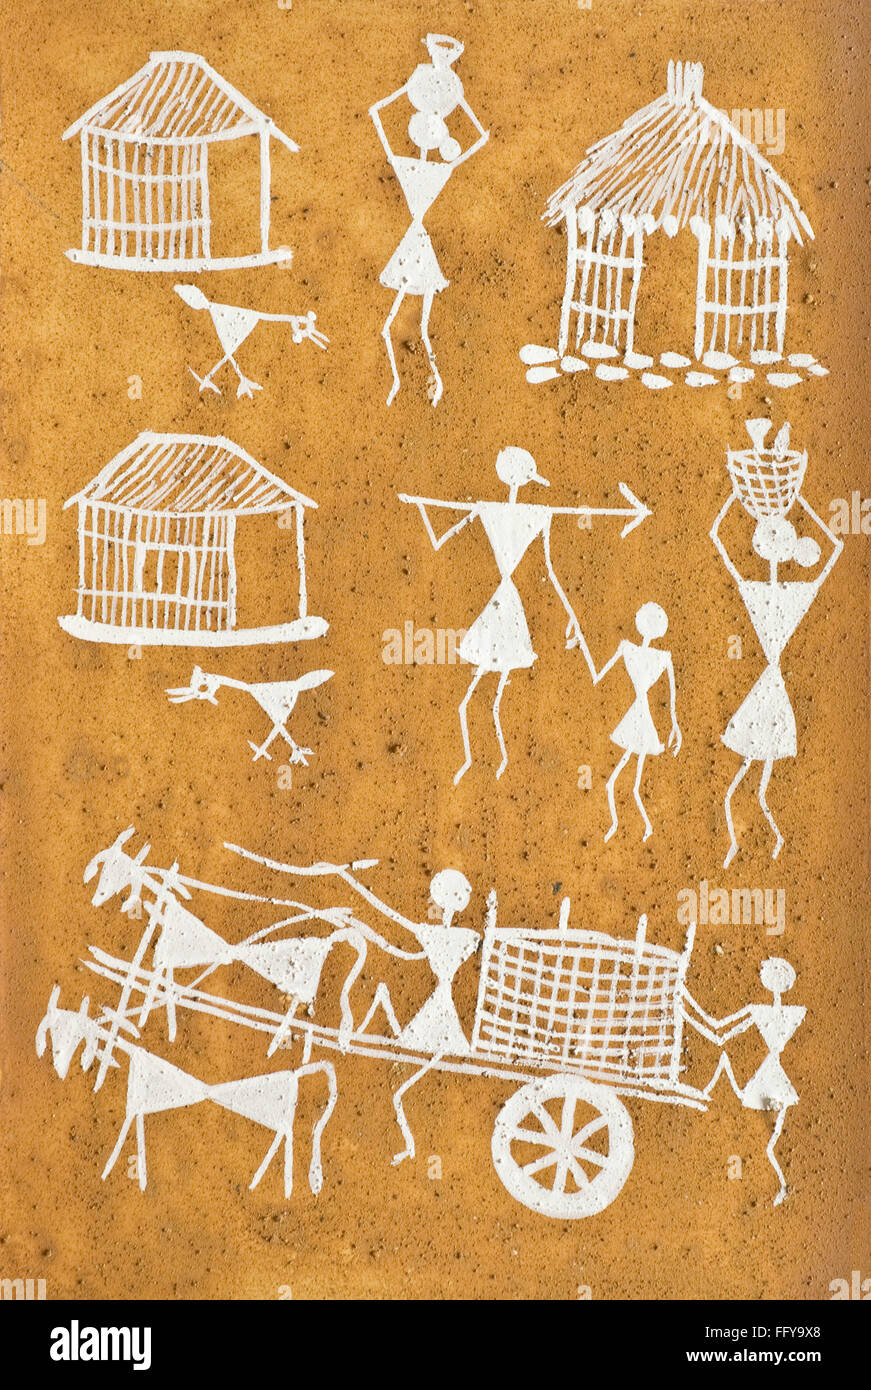 Warli Art High Resolution Stock Photography And Images Alamy